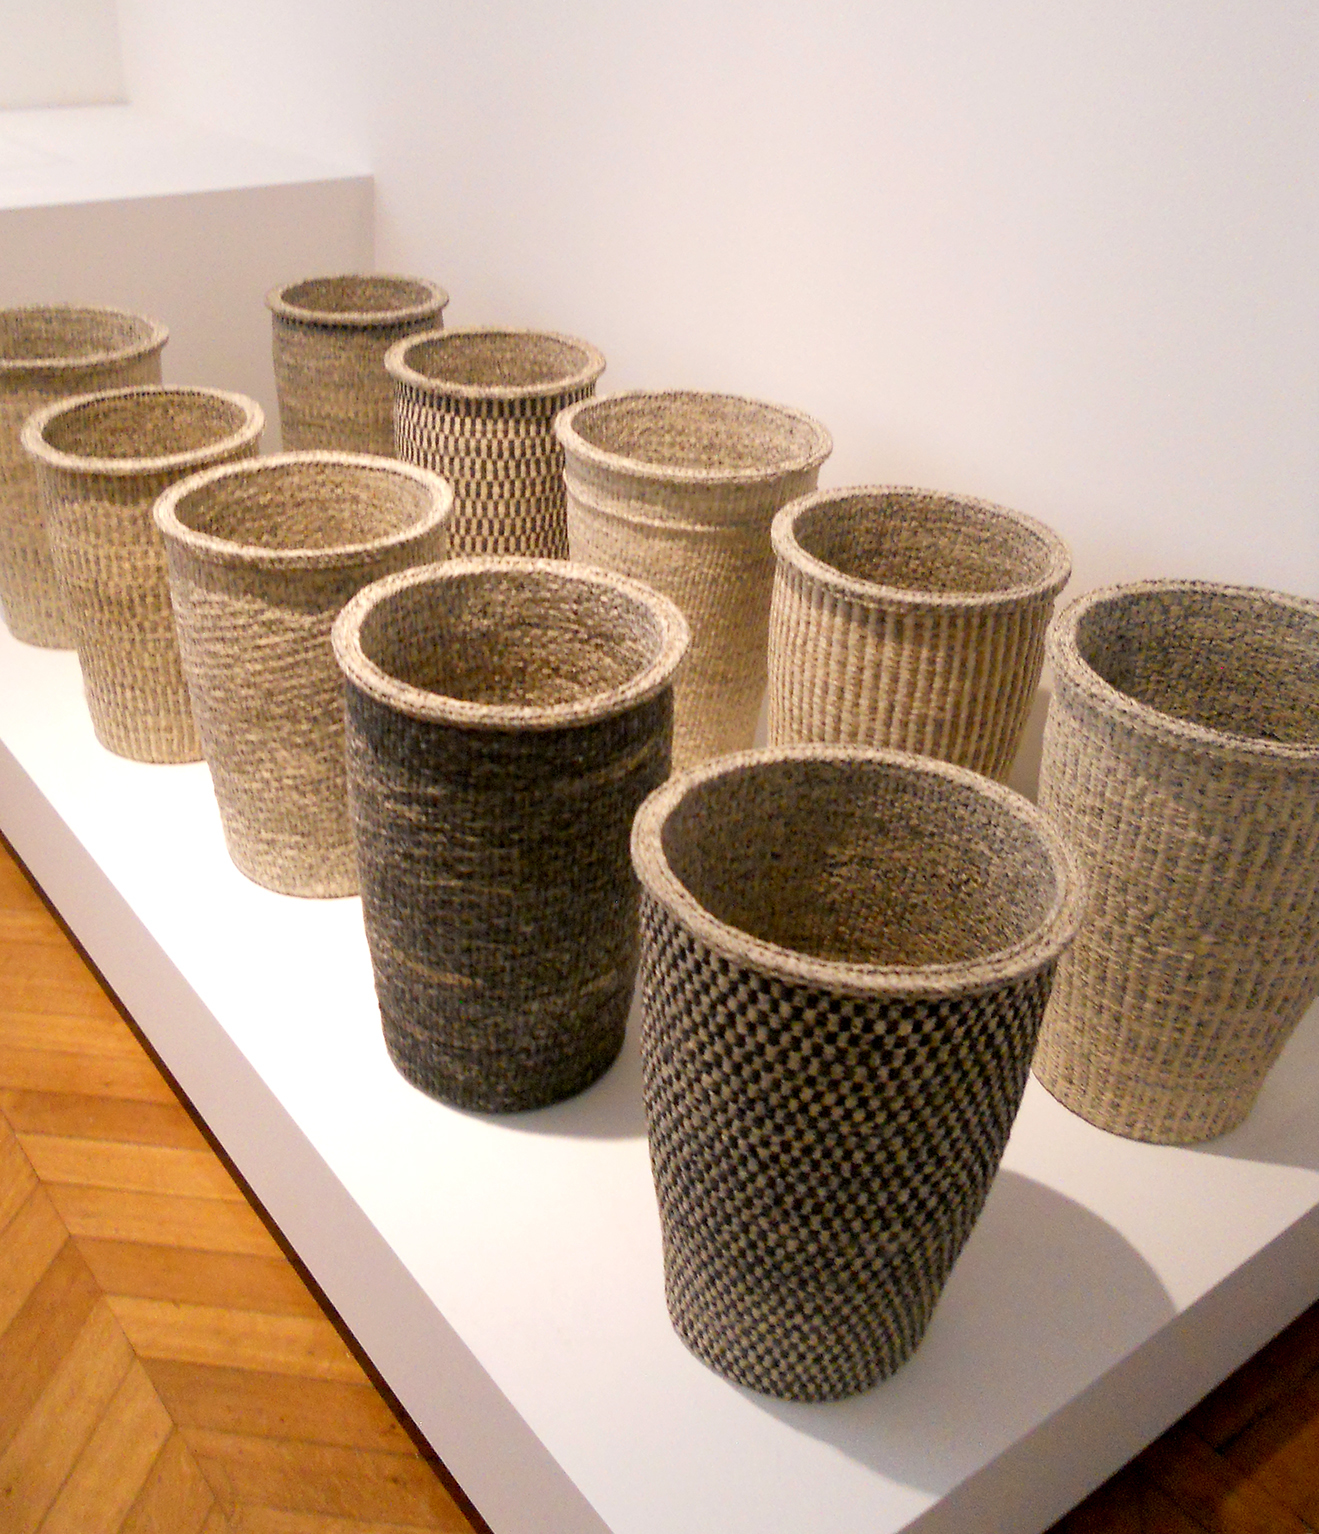 Baskets woven from paper by Kang Sung-hee